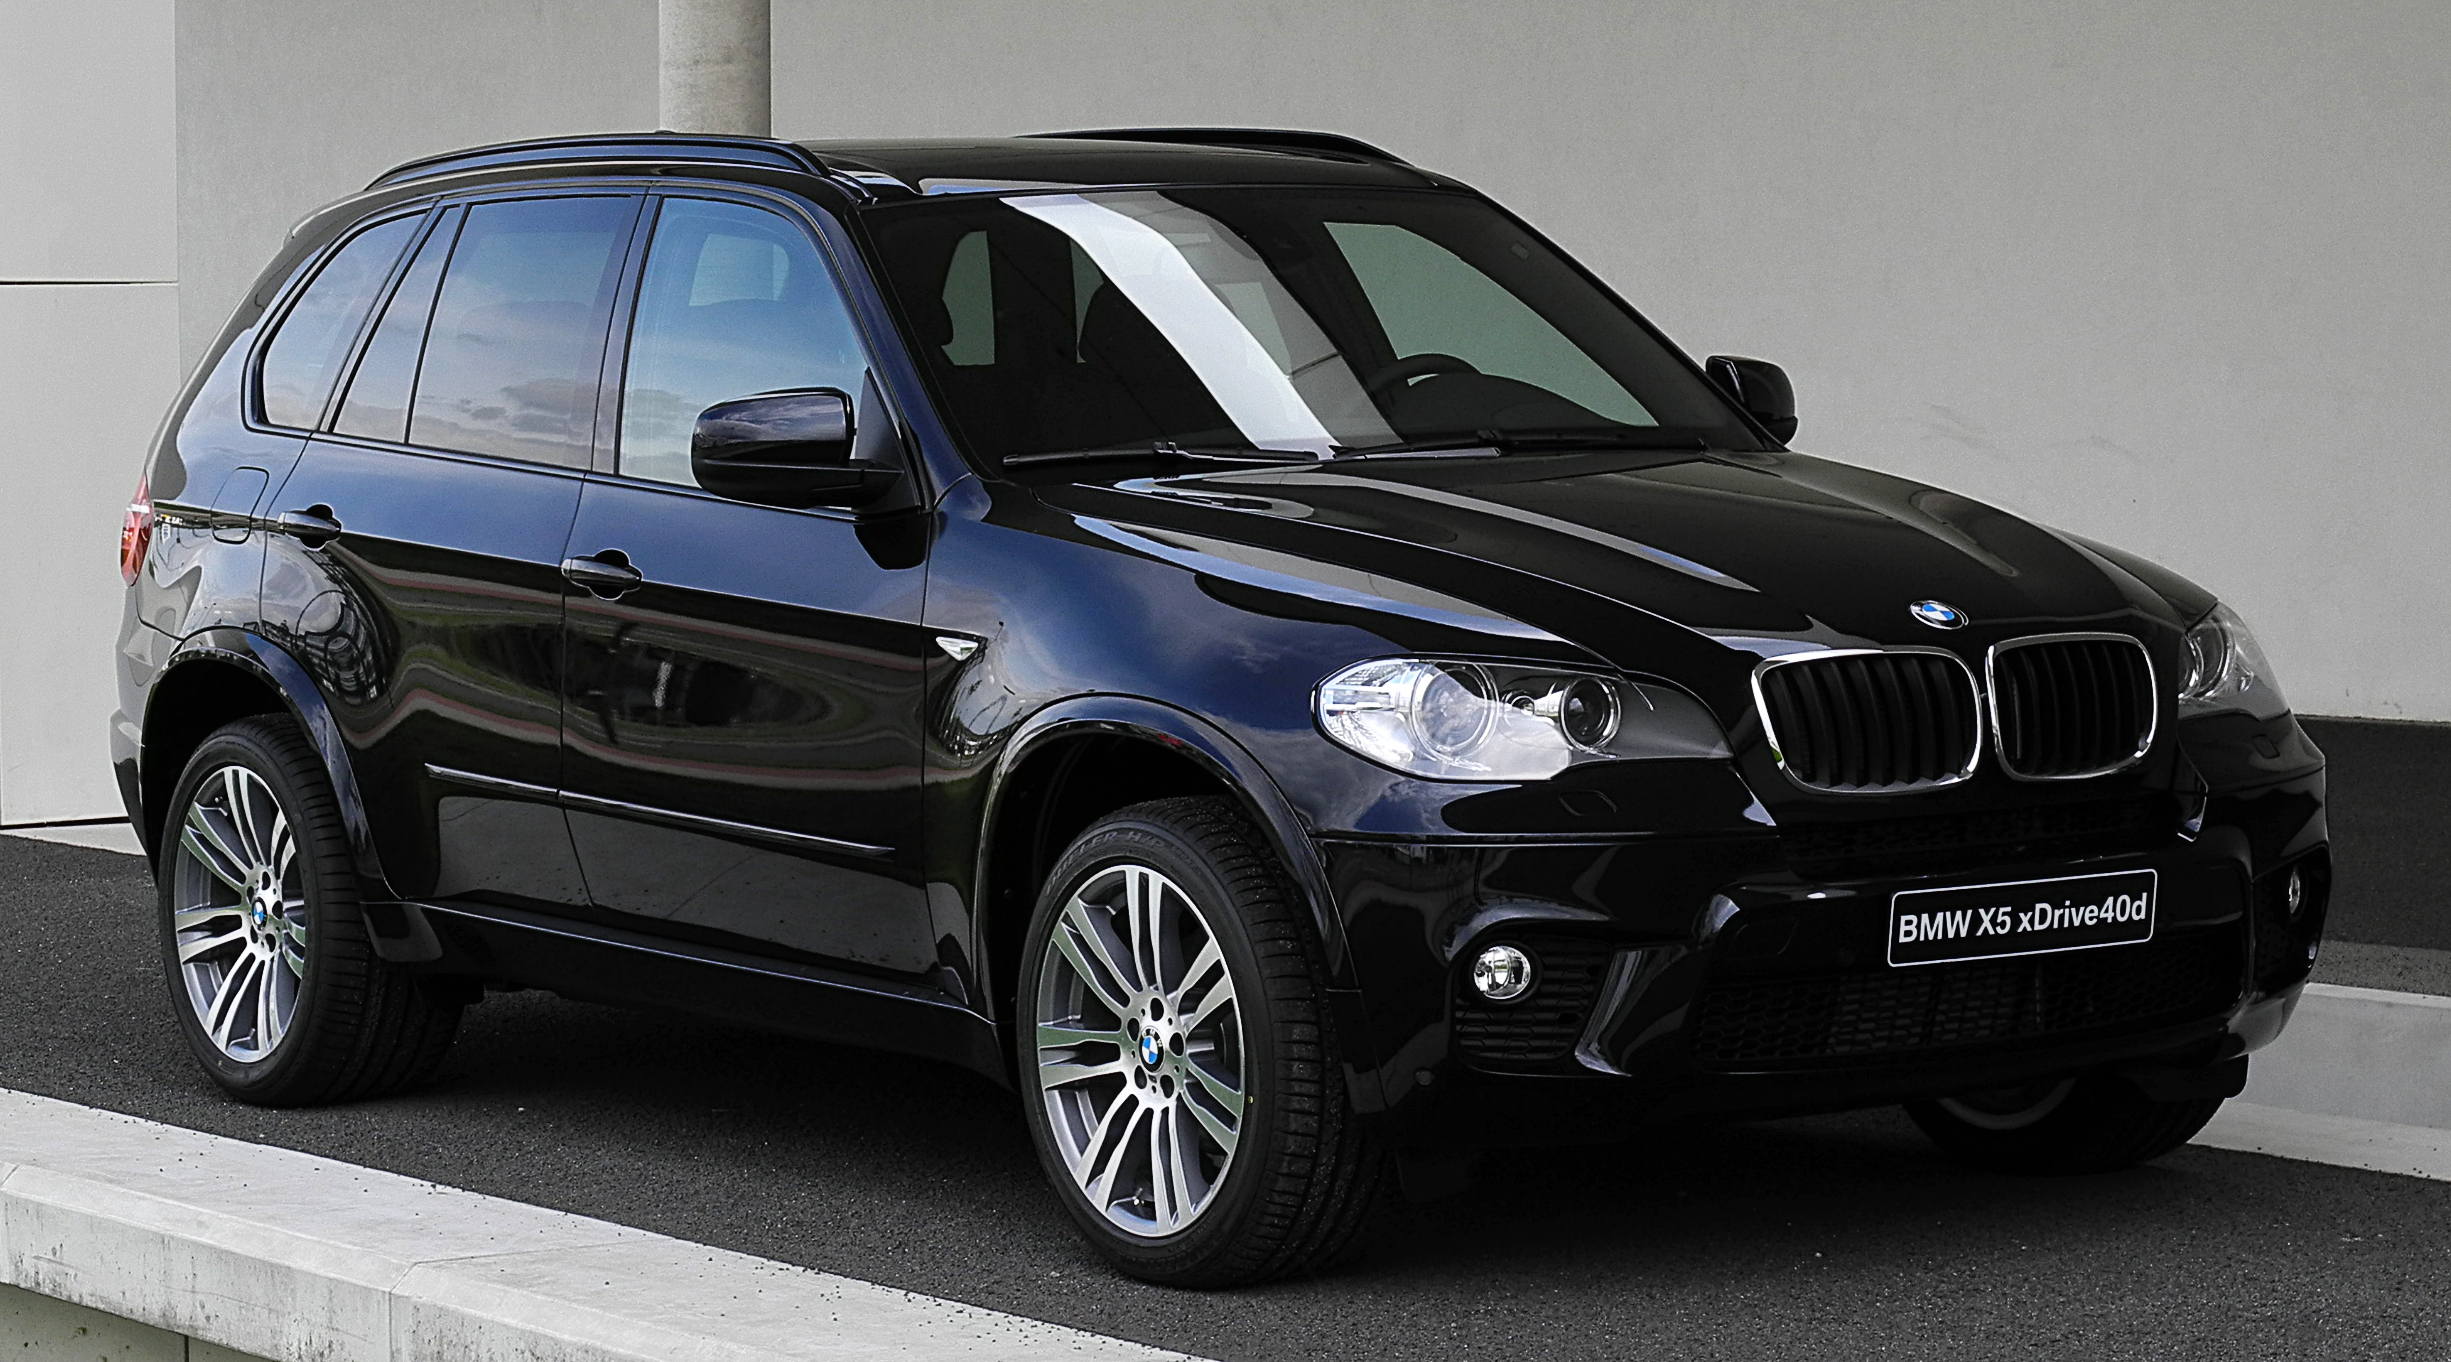 Bmw X5 Car Technical Data Car Specifications Vehicle